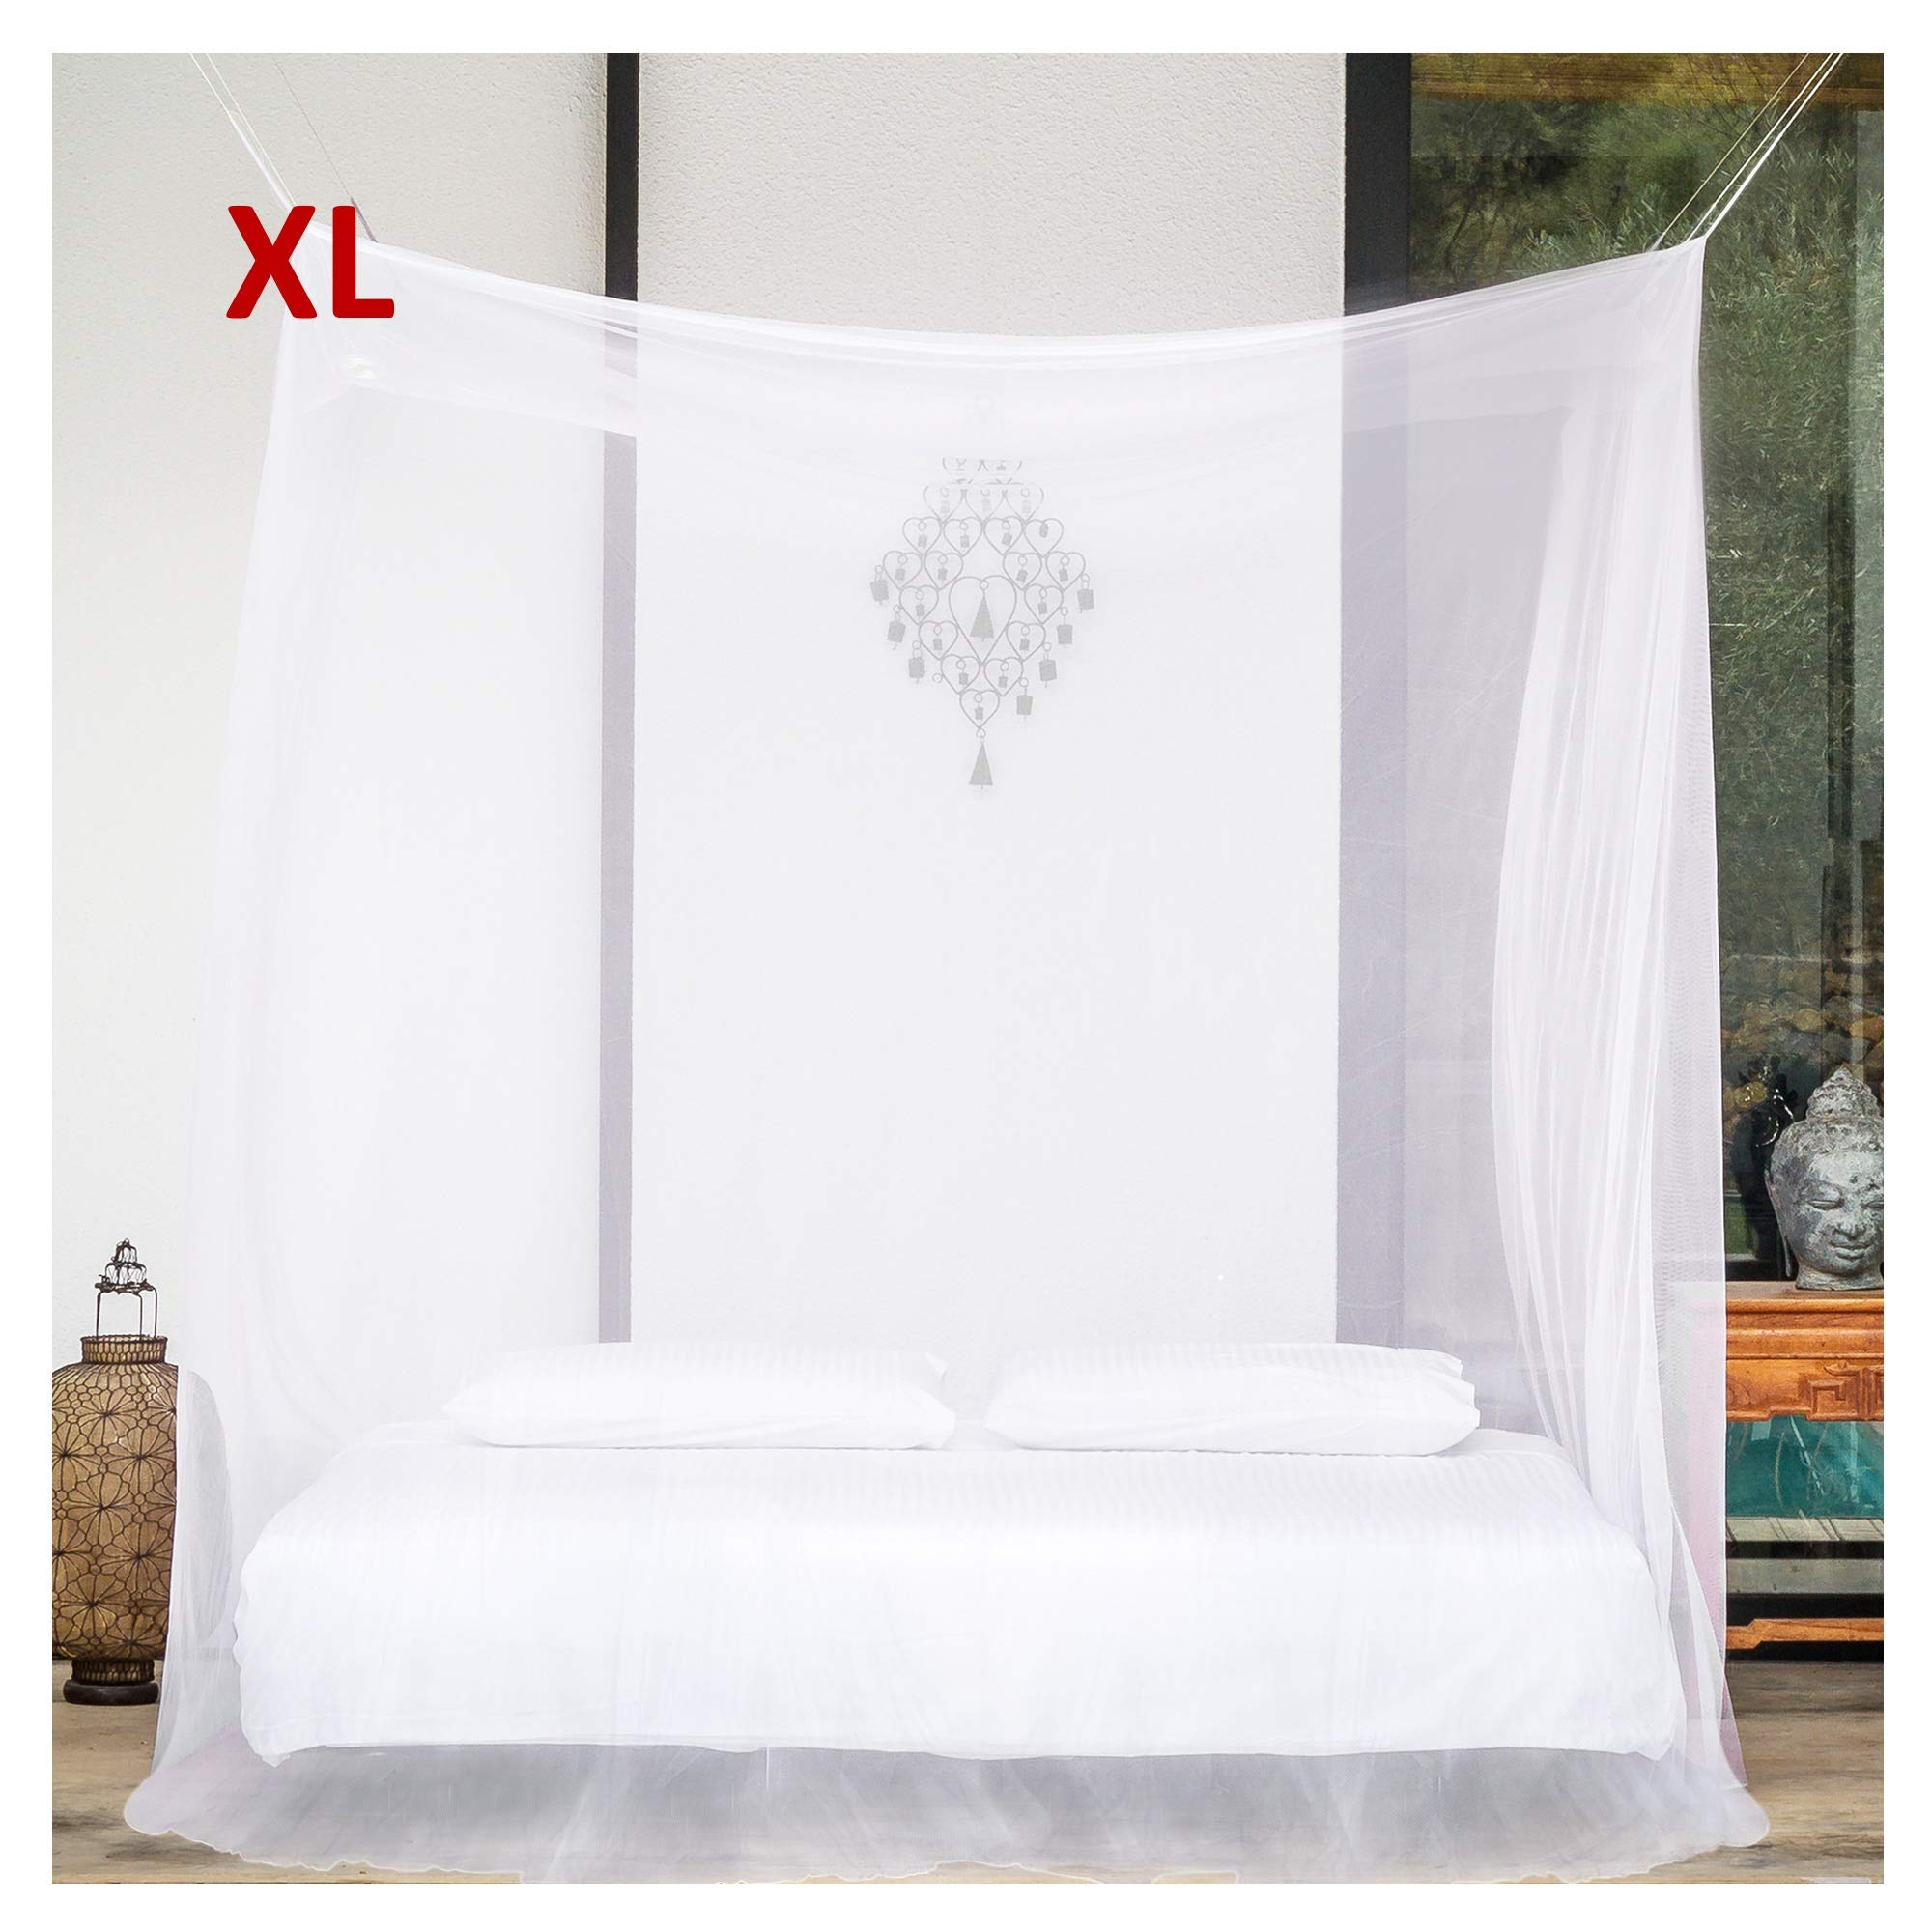 EVEN Naturals Mosquito NET for Bed Canopy, Tent for Double, Queen to California King Size, Extra Large Square Curtains, White Mosquito Netting with 2 Openings, Easy Installation & Carry Bag